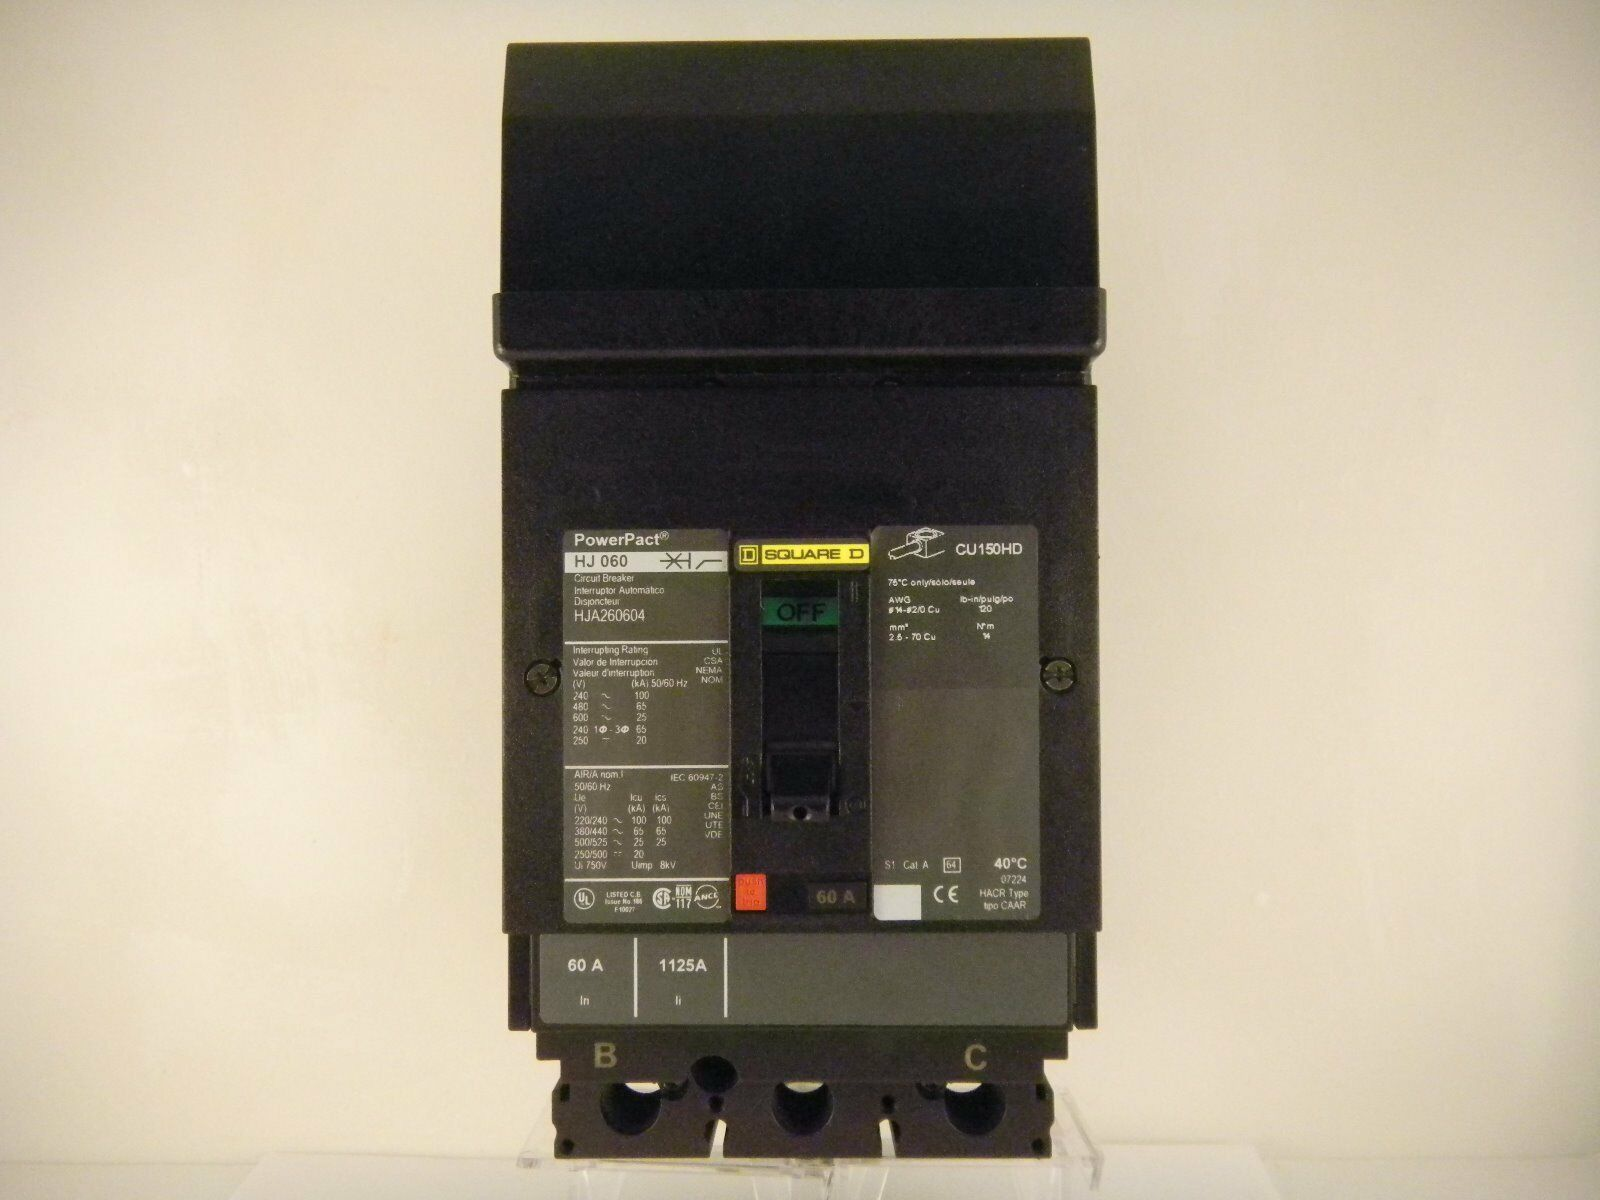 Square D Powerpact Circuit Breaker 2 Pole 60amp Hja260604 19999 Homeline 15amp 1pole Combination Arc Fault 1 Of 8only Available